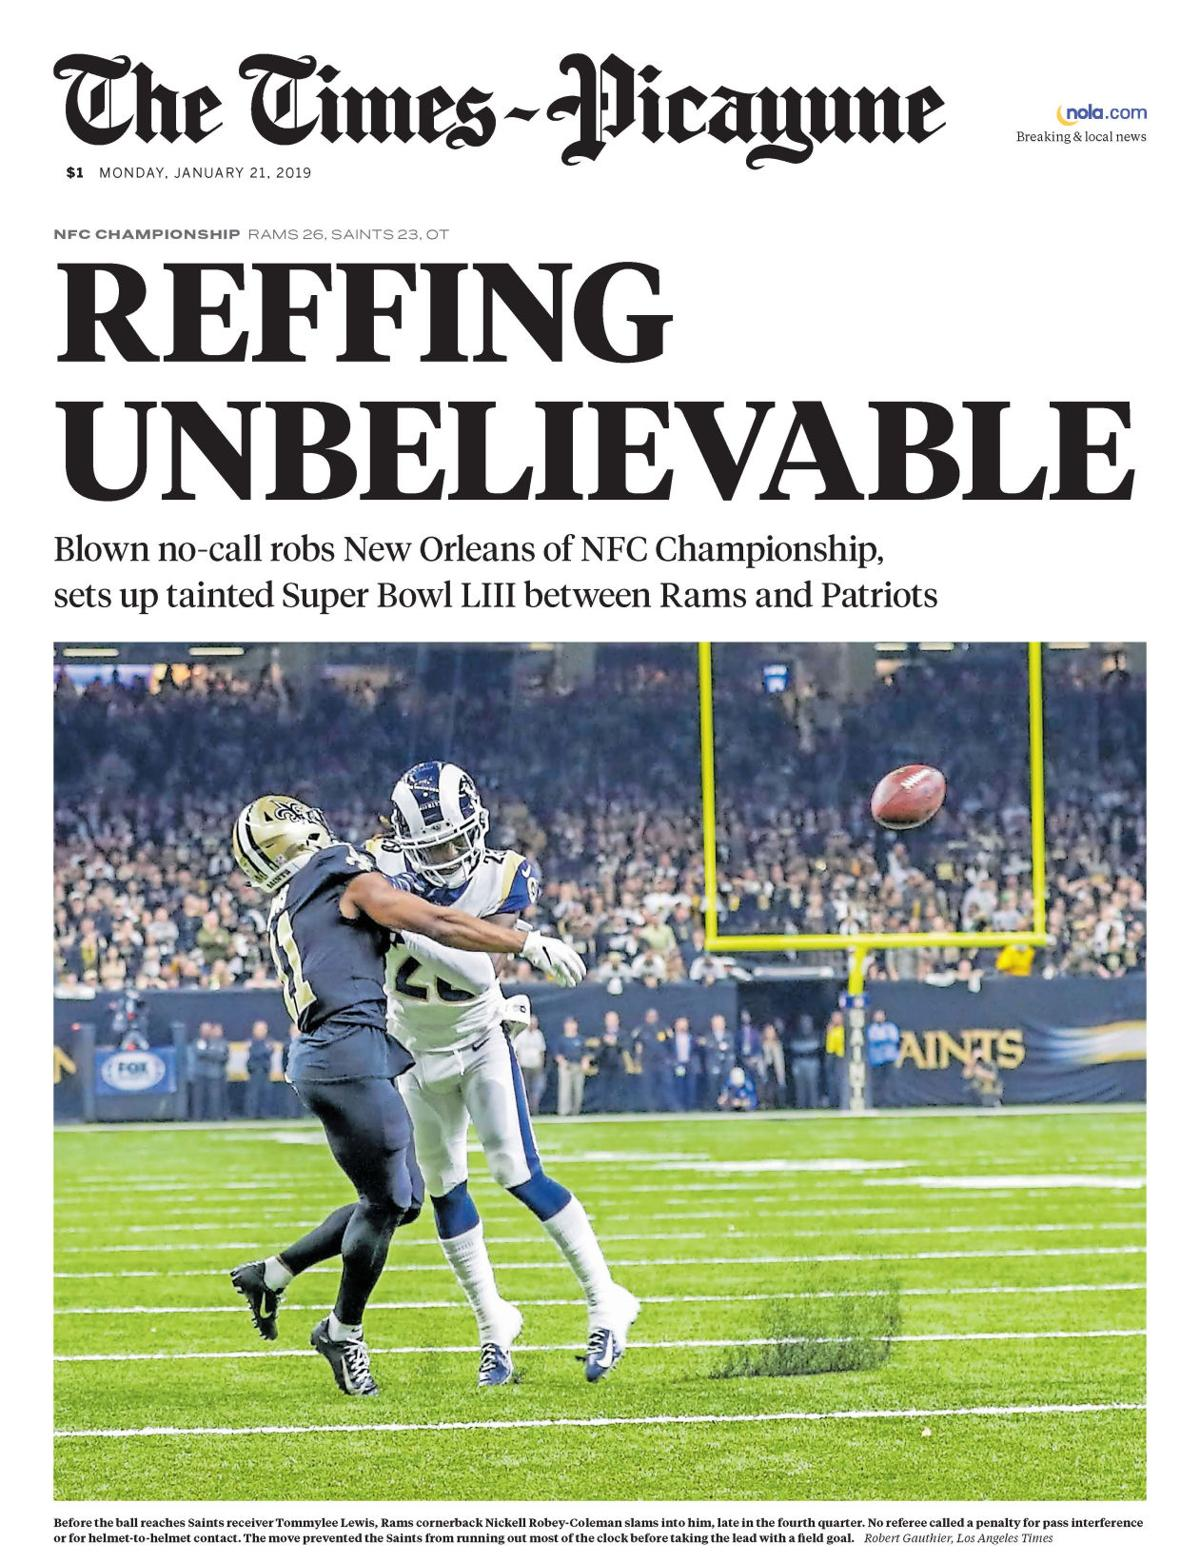 'Nailed it': Times Picayune's Saints-Rams front page gets social media props